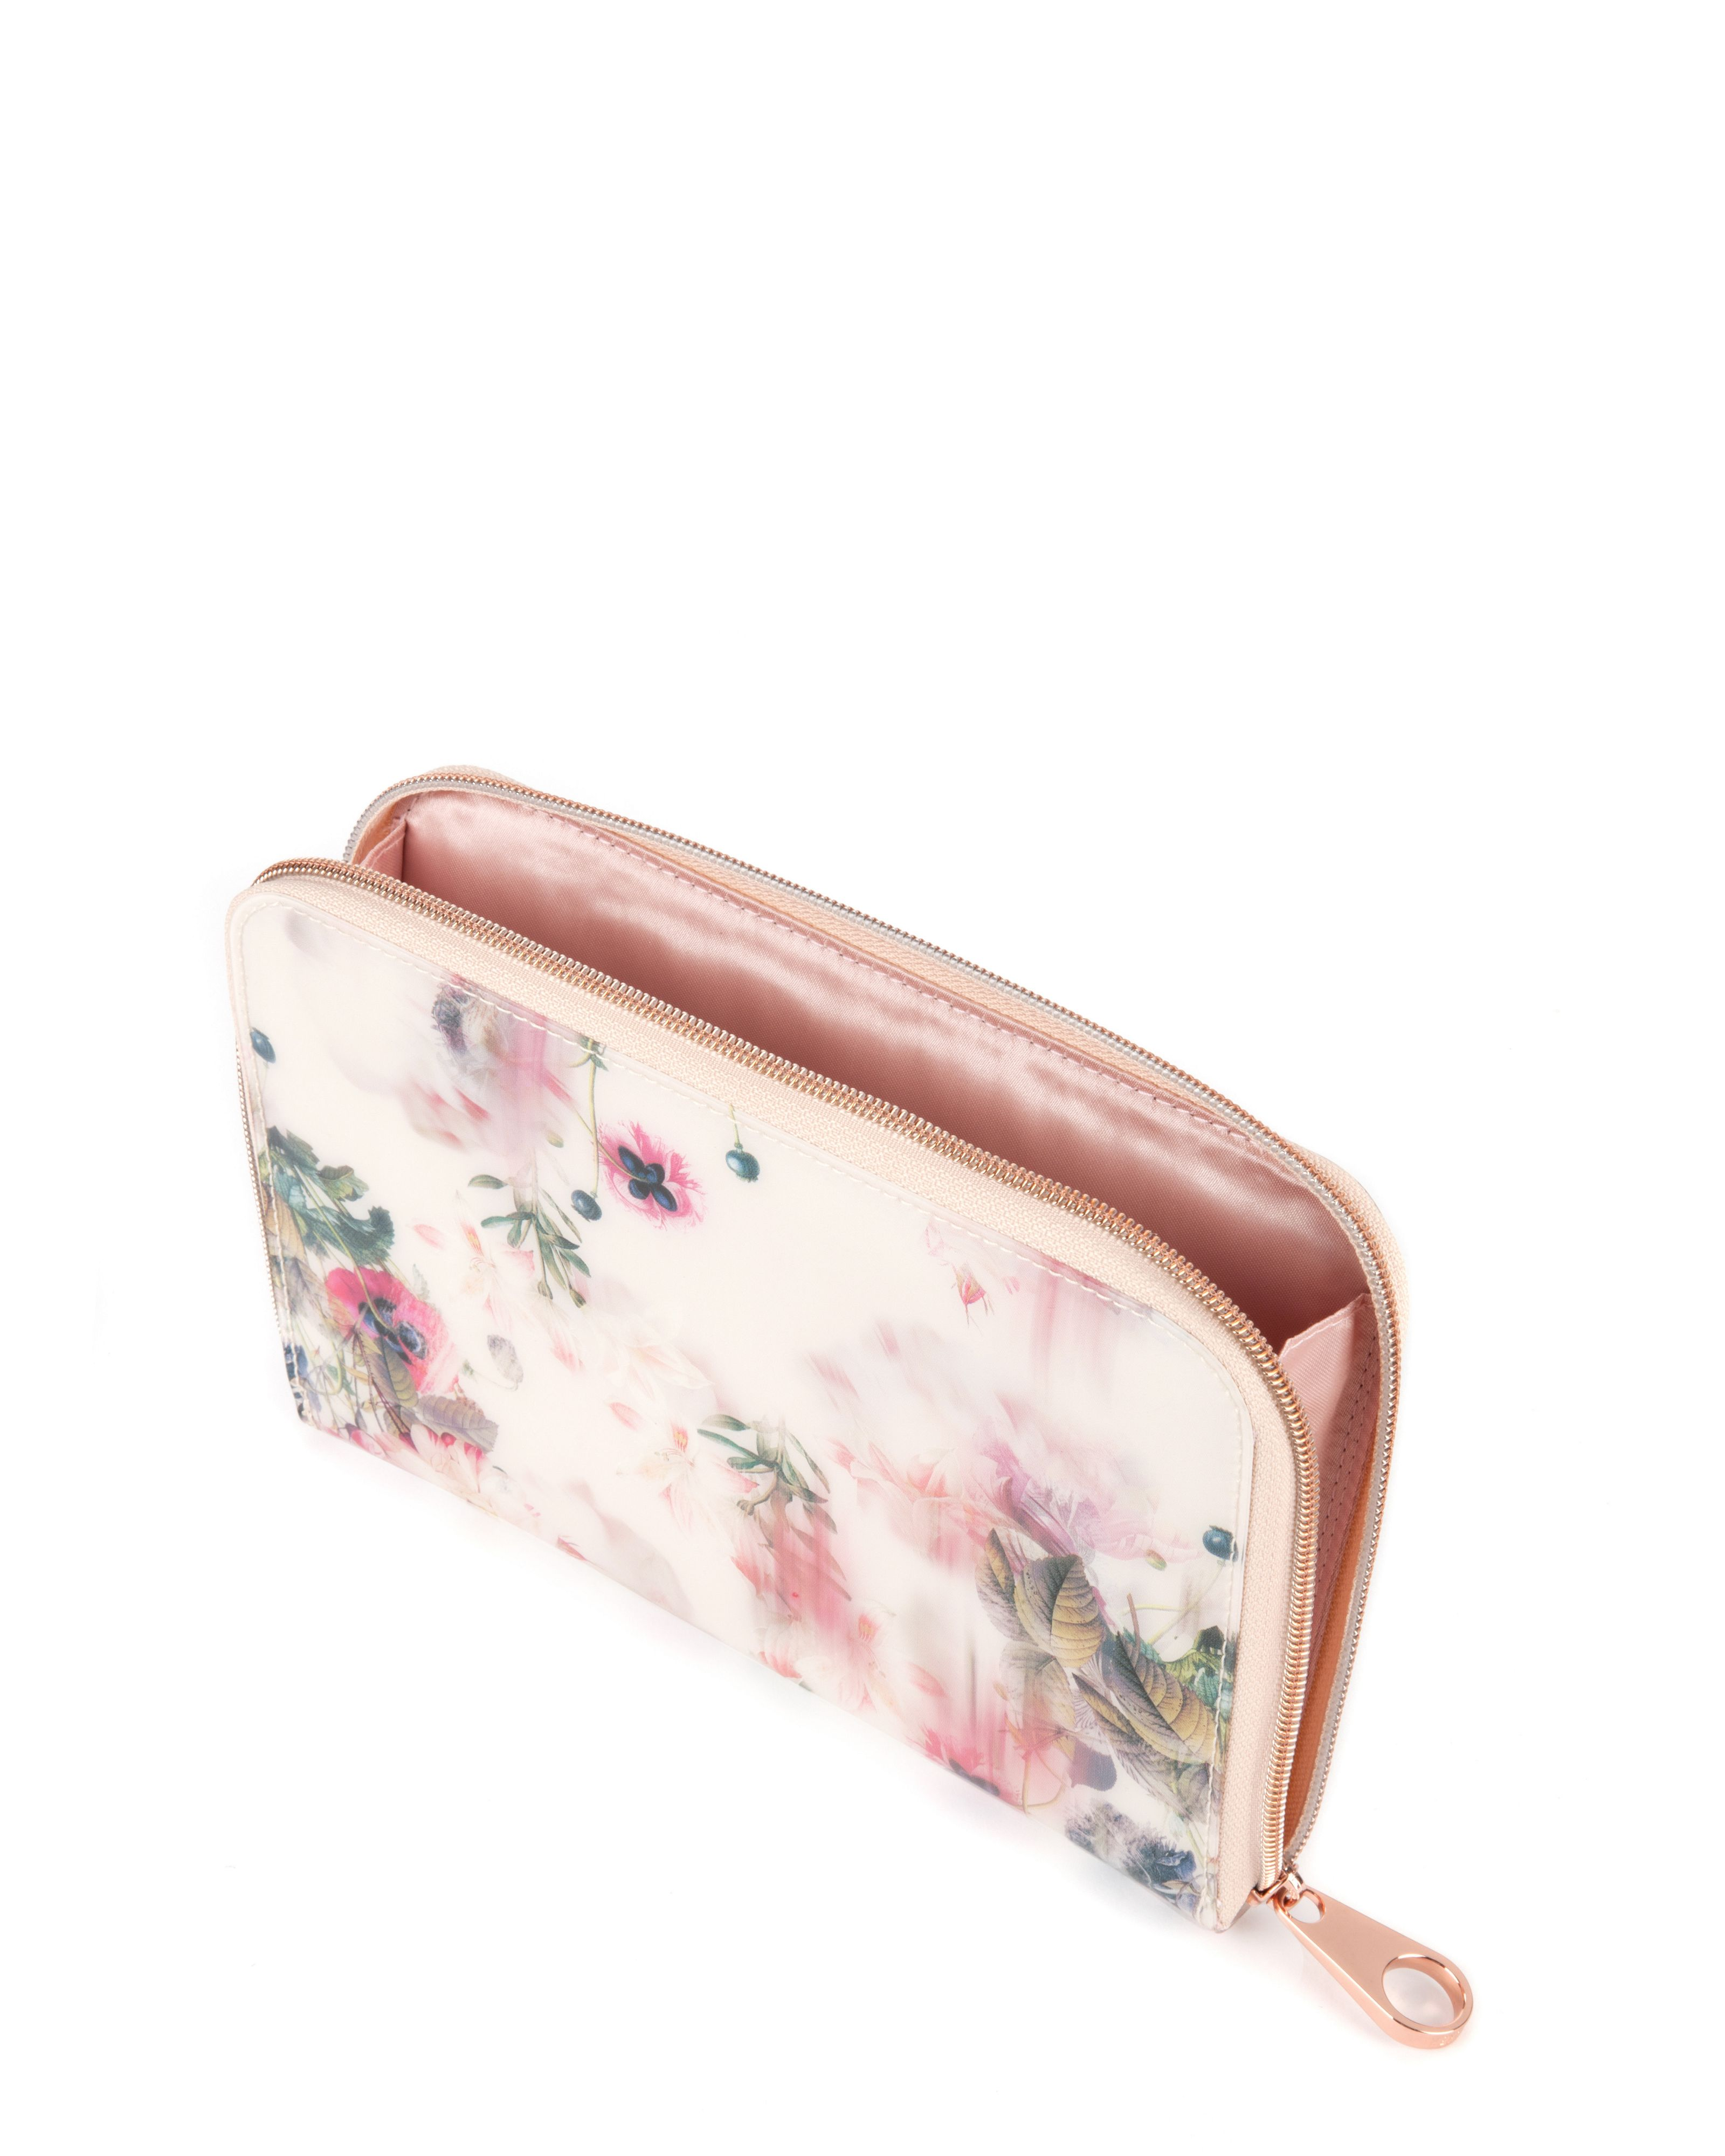 Wiicon opulent bloom mini tablet case